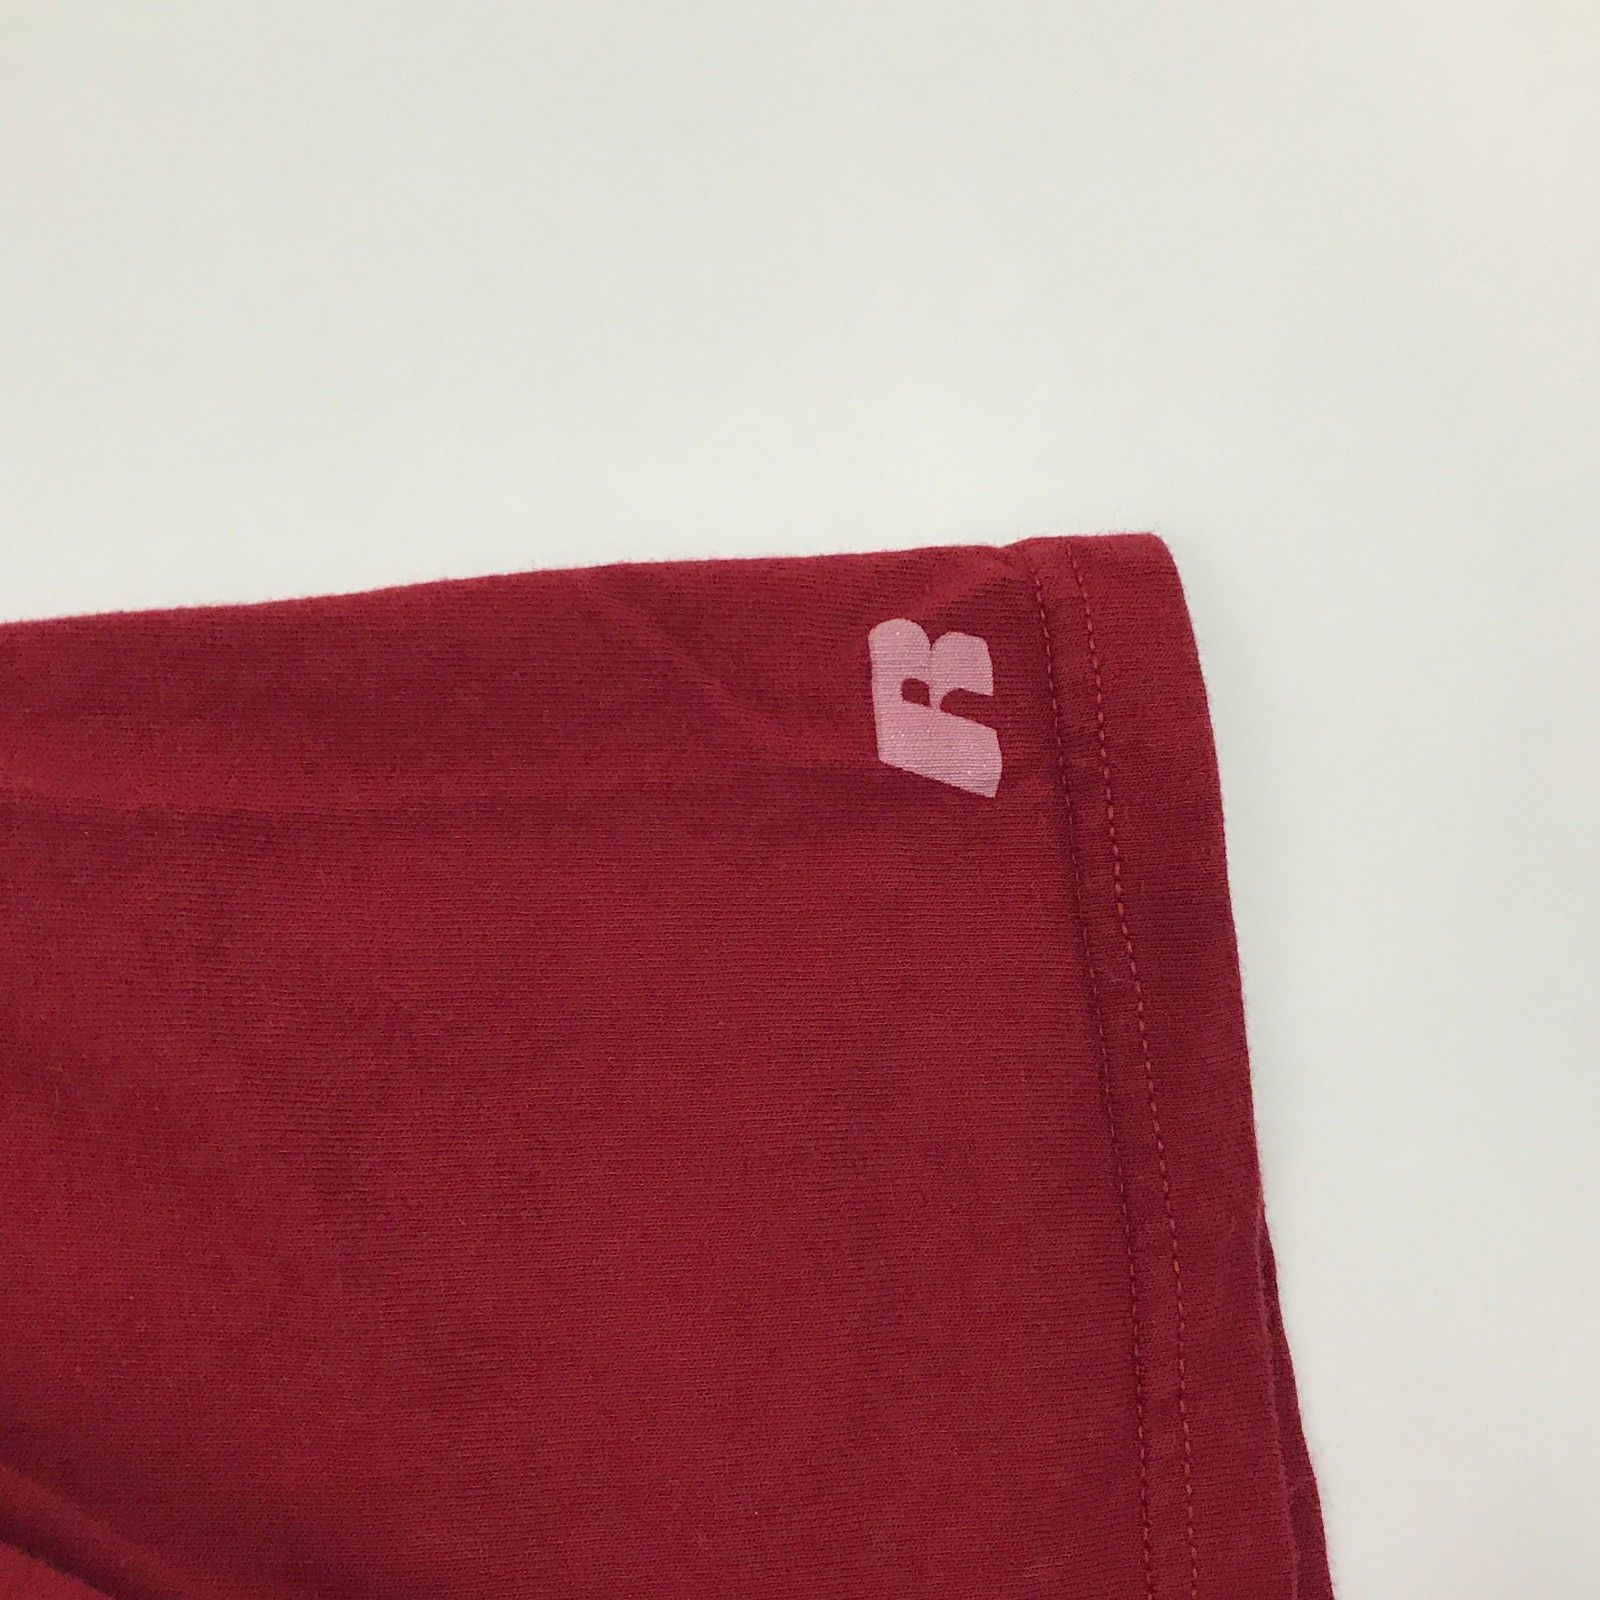 Neuf Russell Athletic Stanford T-Shirt Taille Adulte Large Rouge Manche Courte